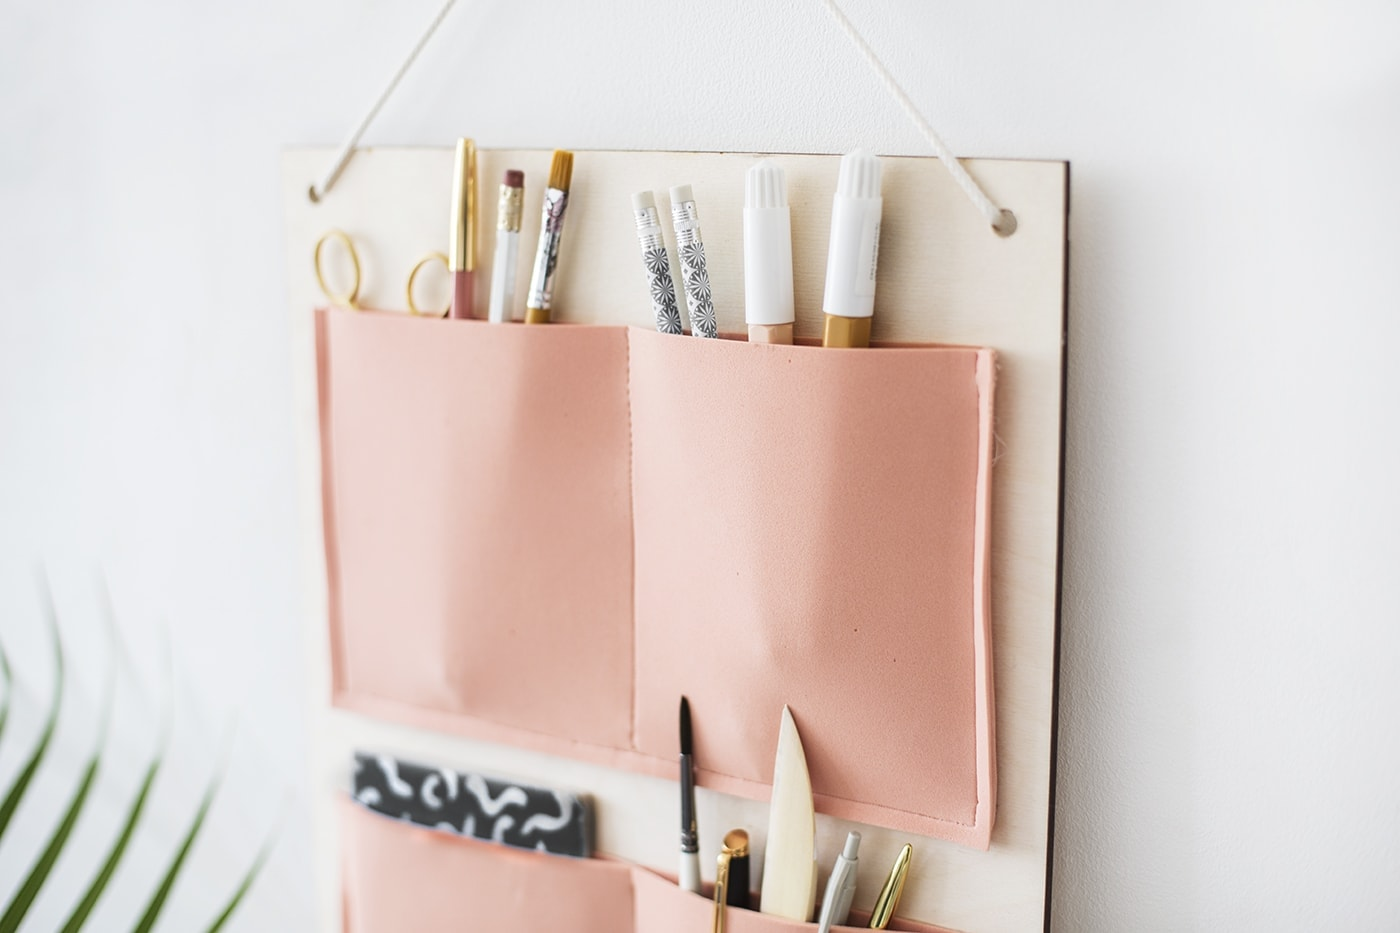 DIY hanging organiser made with plywood and foam pockets   organisation   easy craft ideas for the home or office